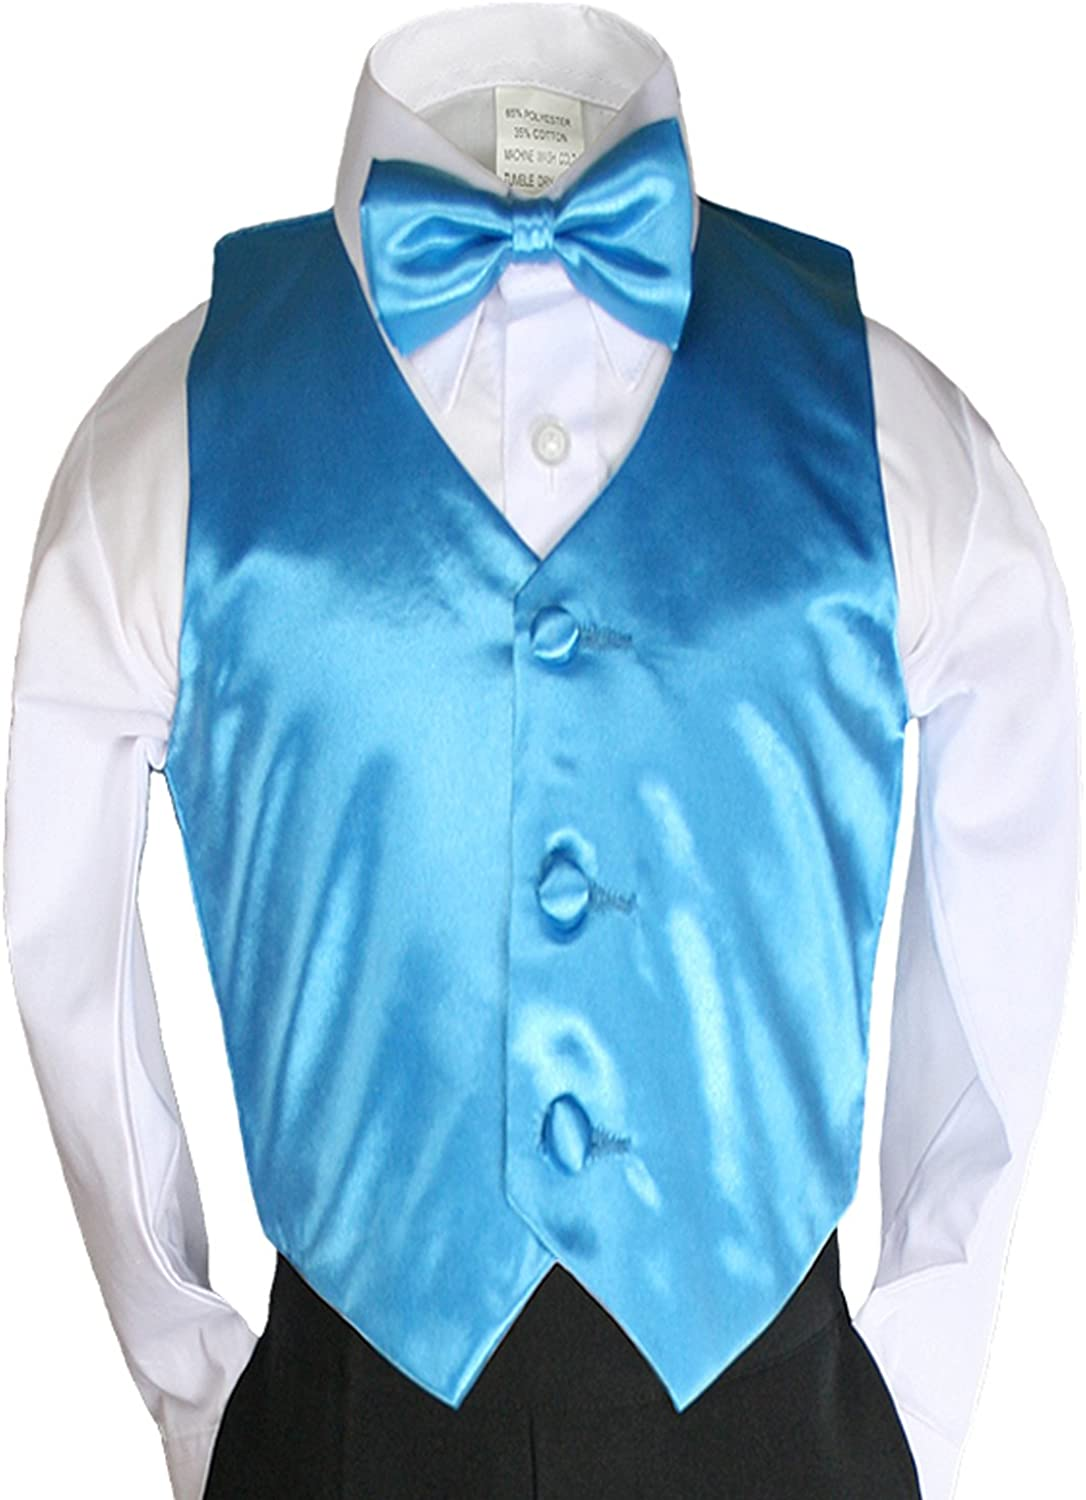 Classic Gift Wedding Party Tuxedo Suits Color Satin Vest /& Bow tie Only from Boy Baby New Born Toddler Size Sm-4T